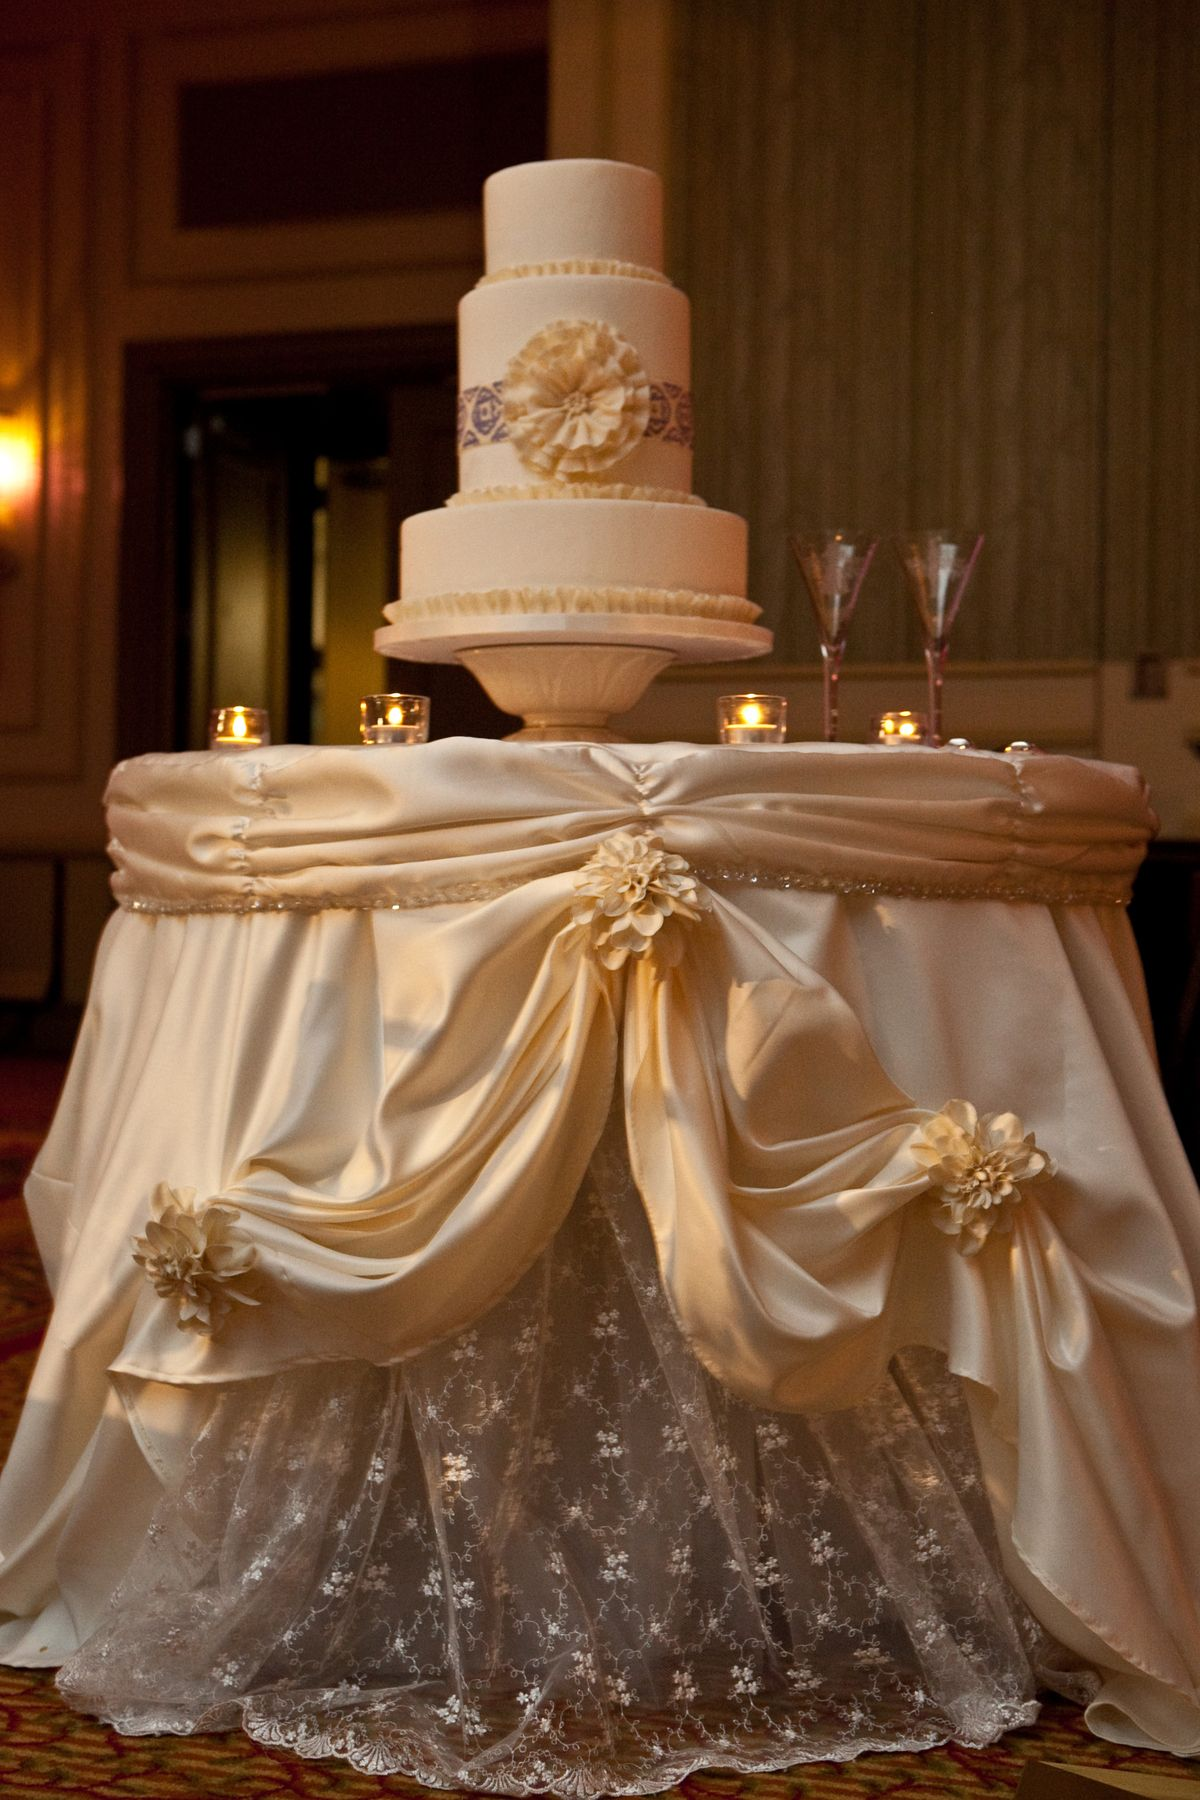 Table Decor And More The Gorgeous Cake Table Linen Was Made To Resemble The